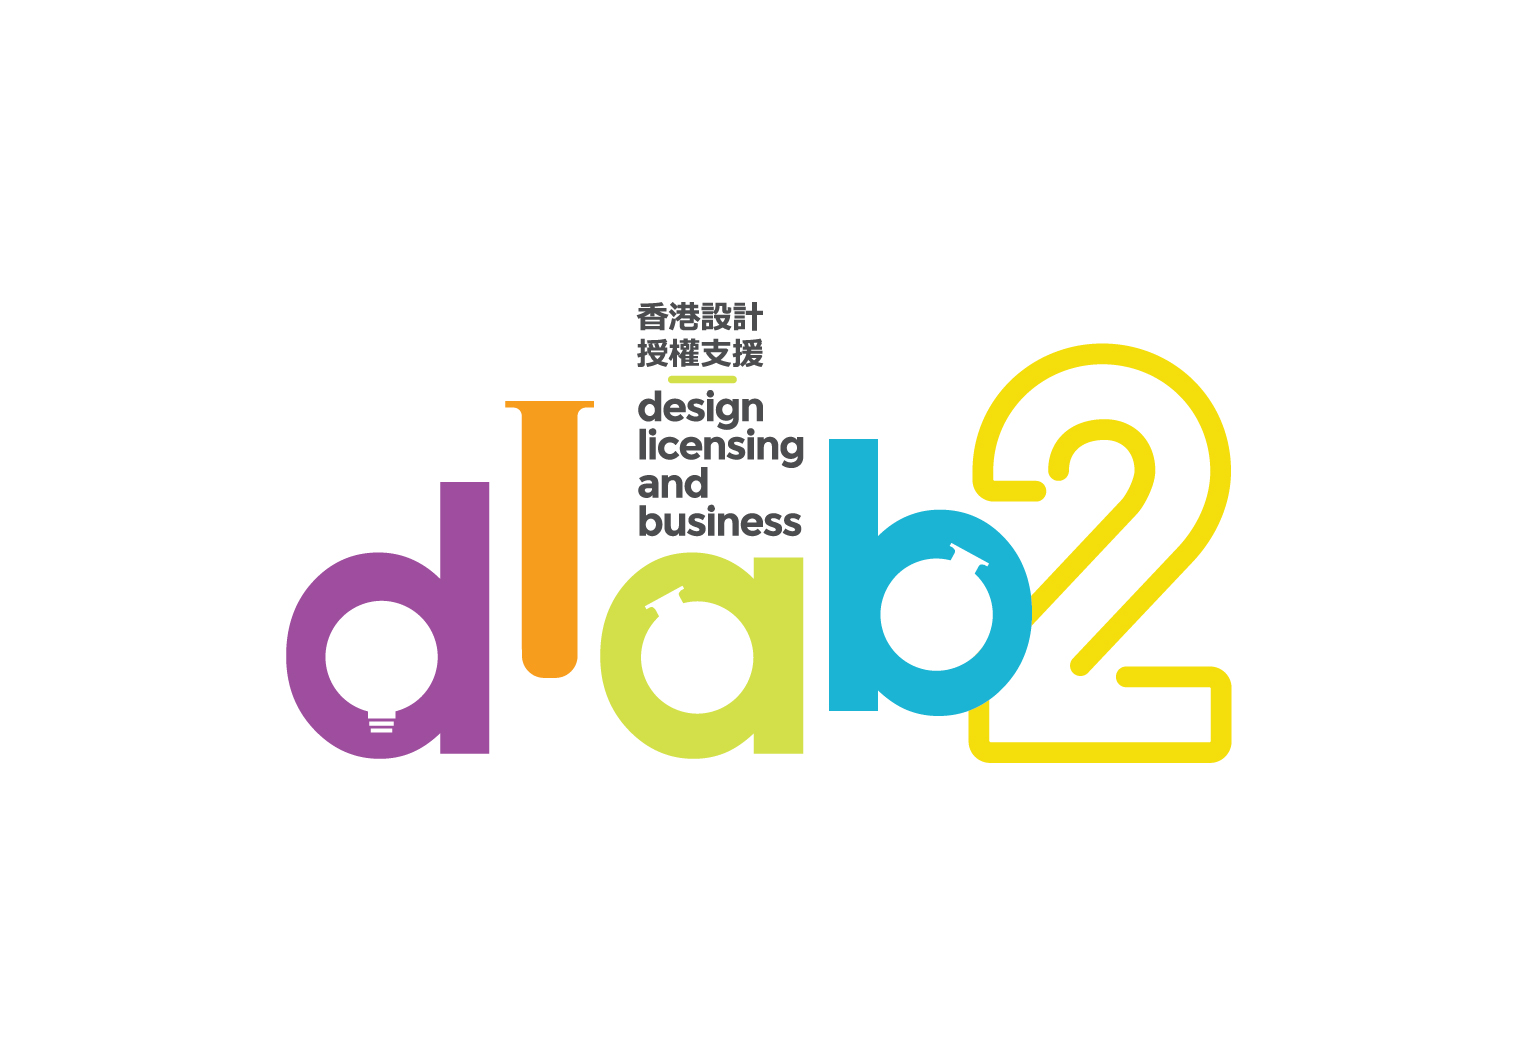 Supporting Event - Second Design Licensing And Business (DLAB) Support Scheme